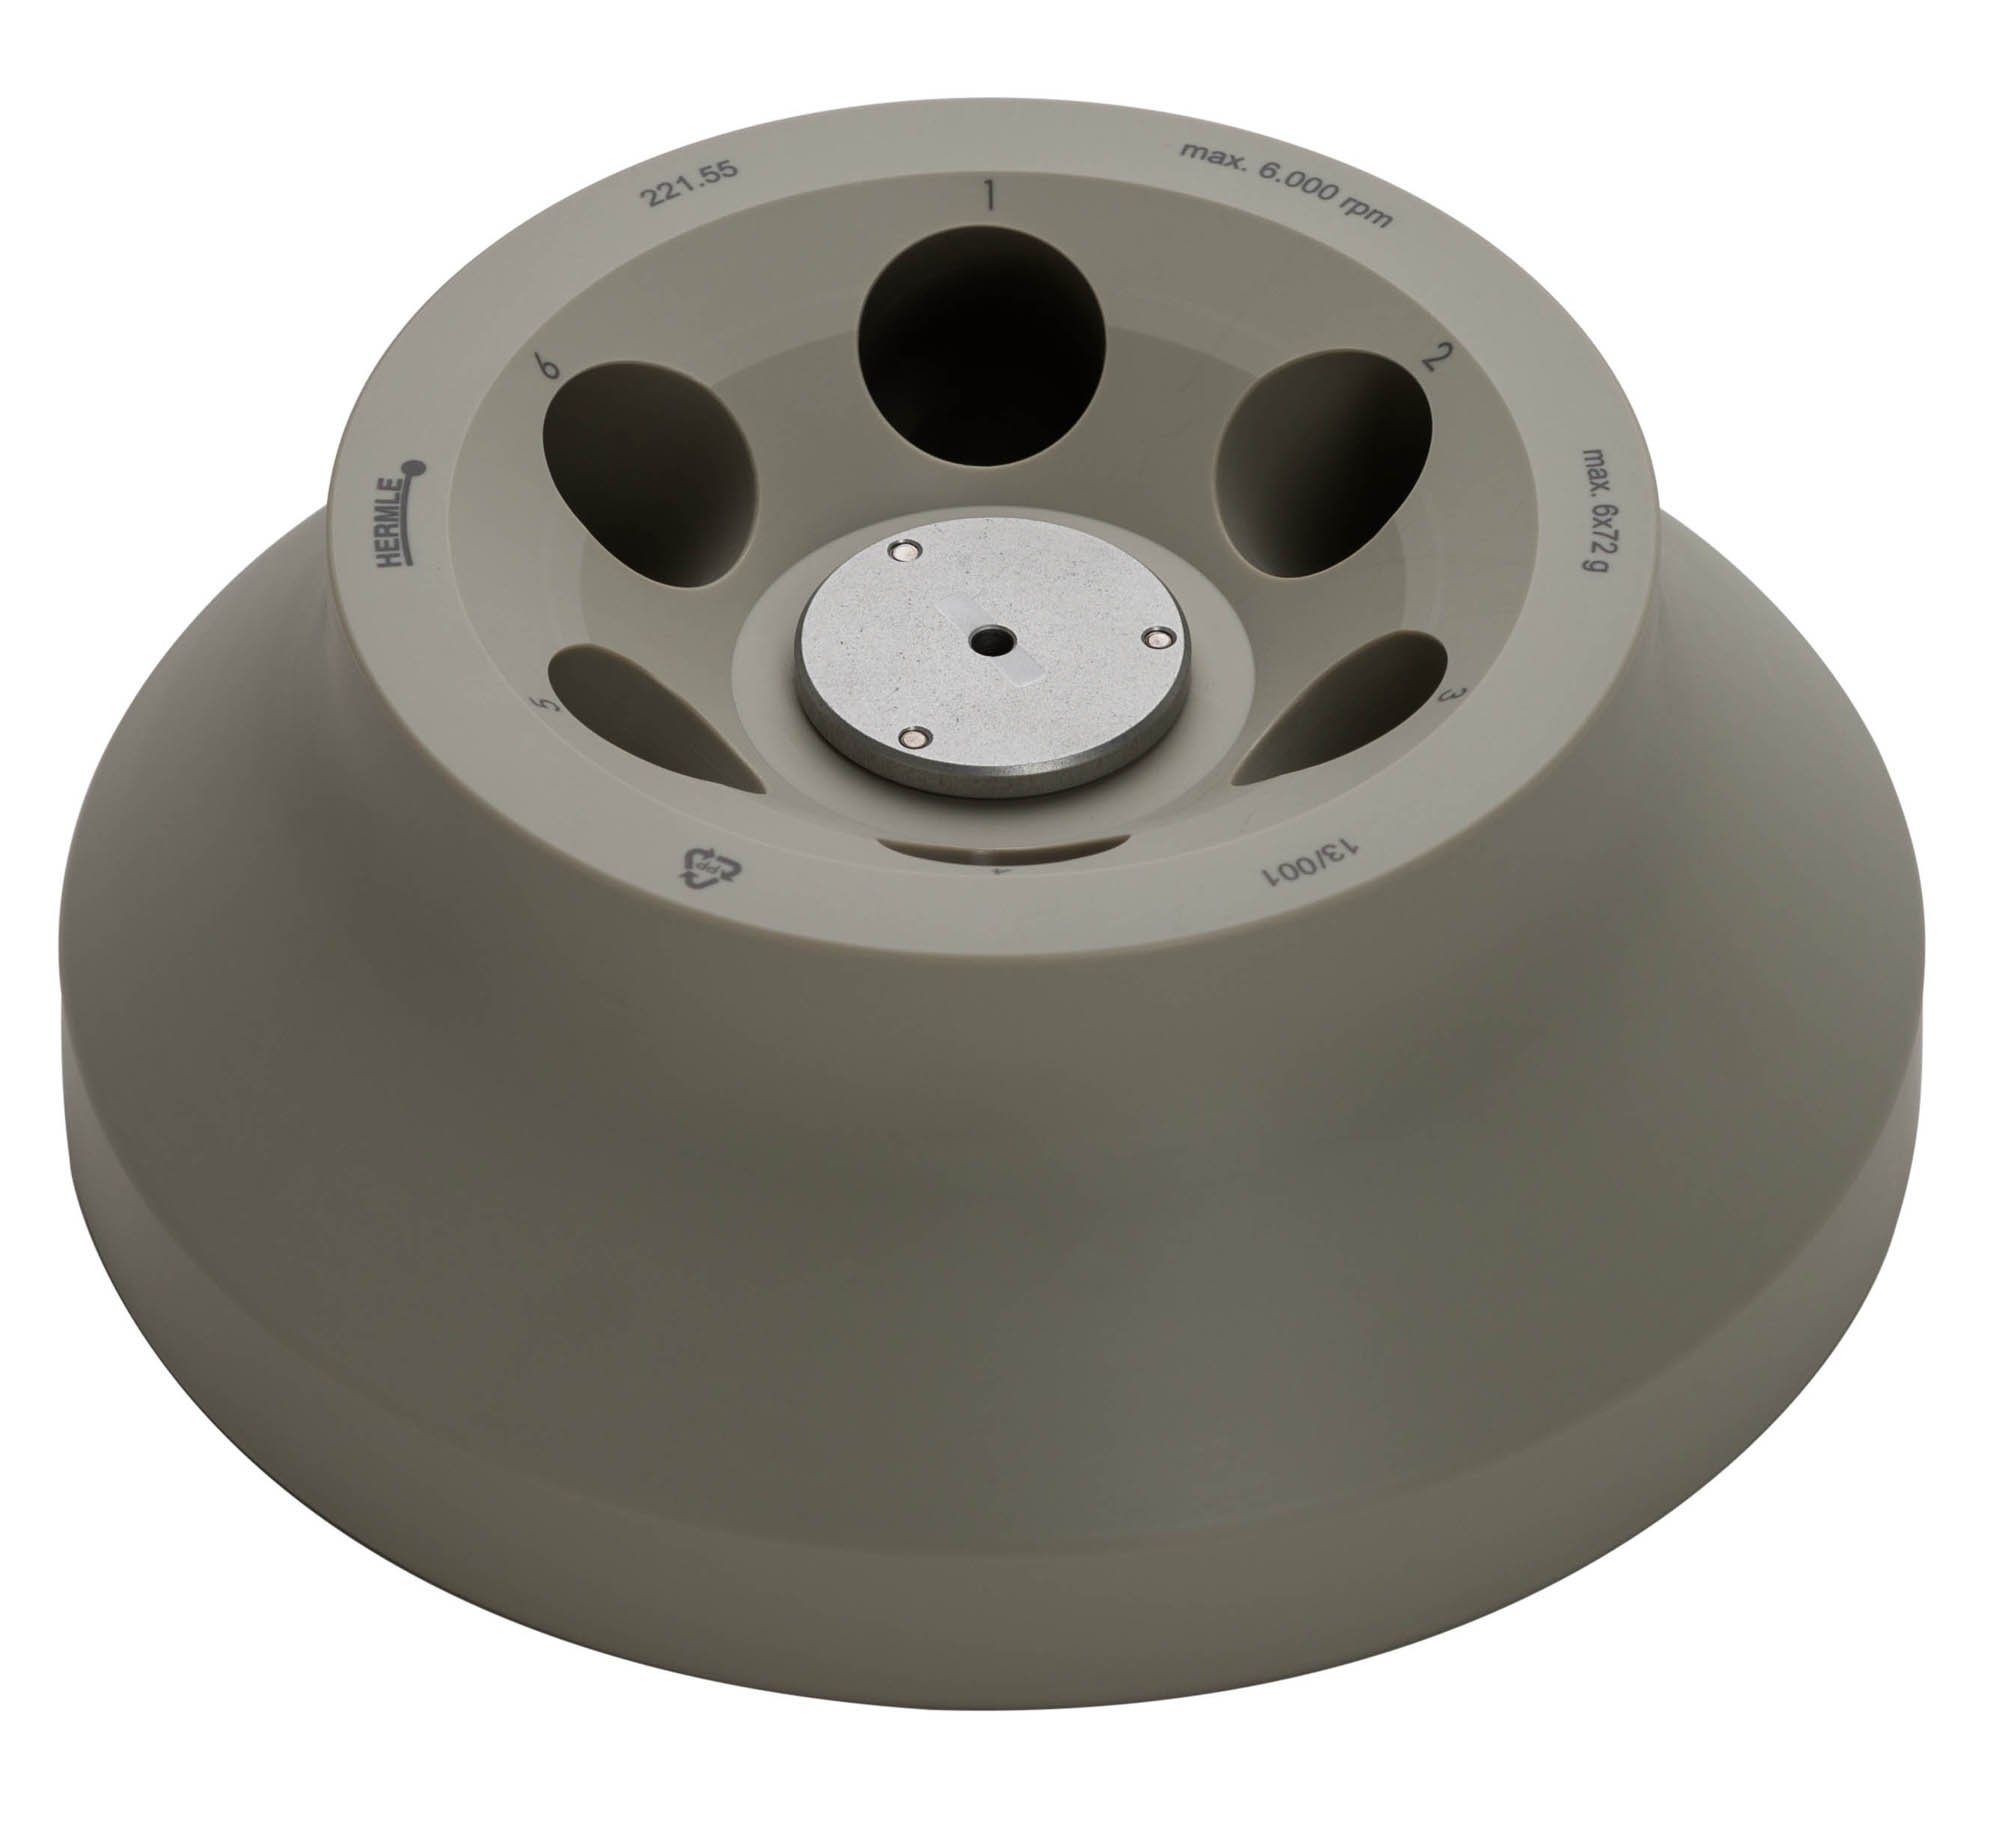 6 x 50ml Conical Rotor (6,000rpm/4,427xg) (for Z206-A only)